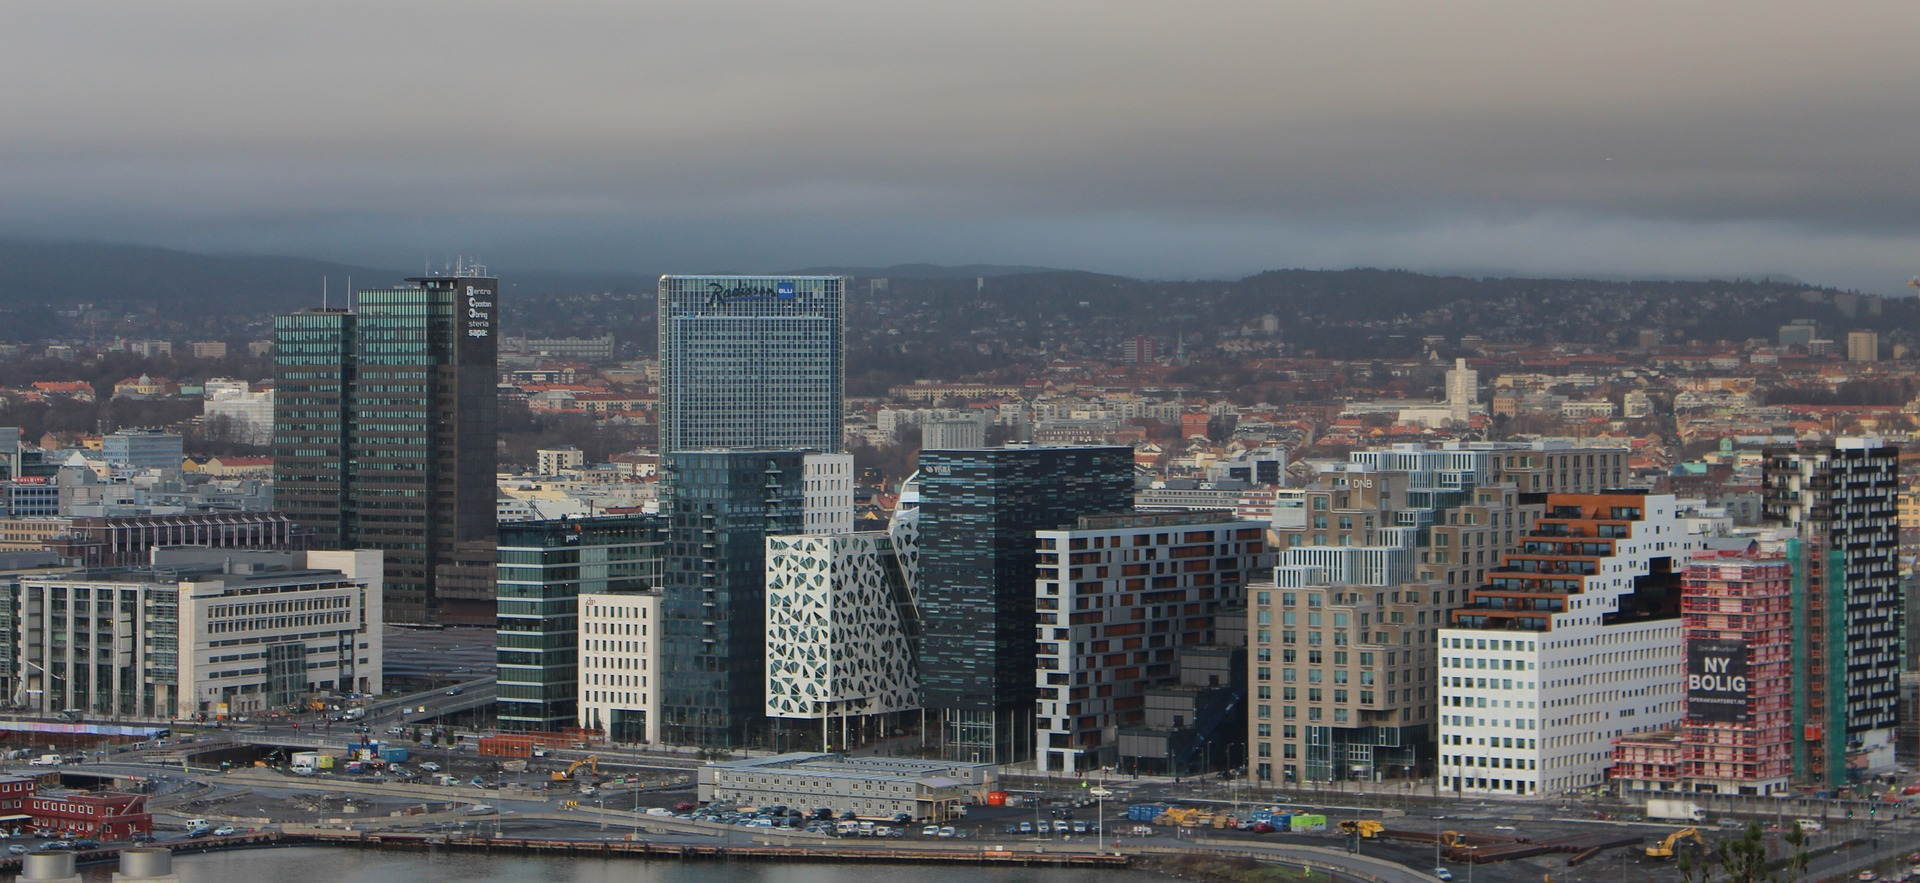 Oslo, capital of Norway